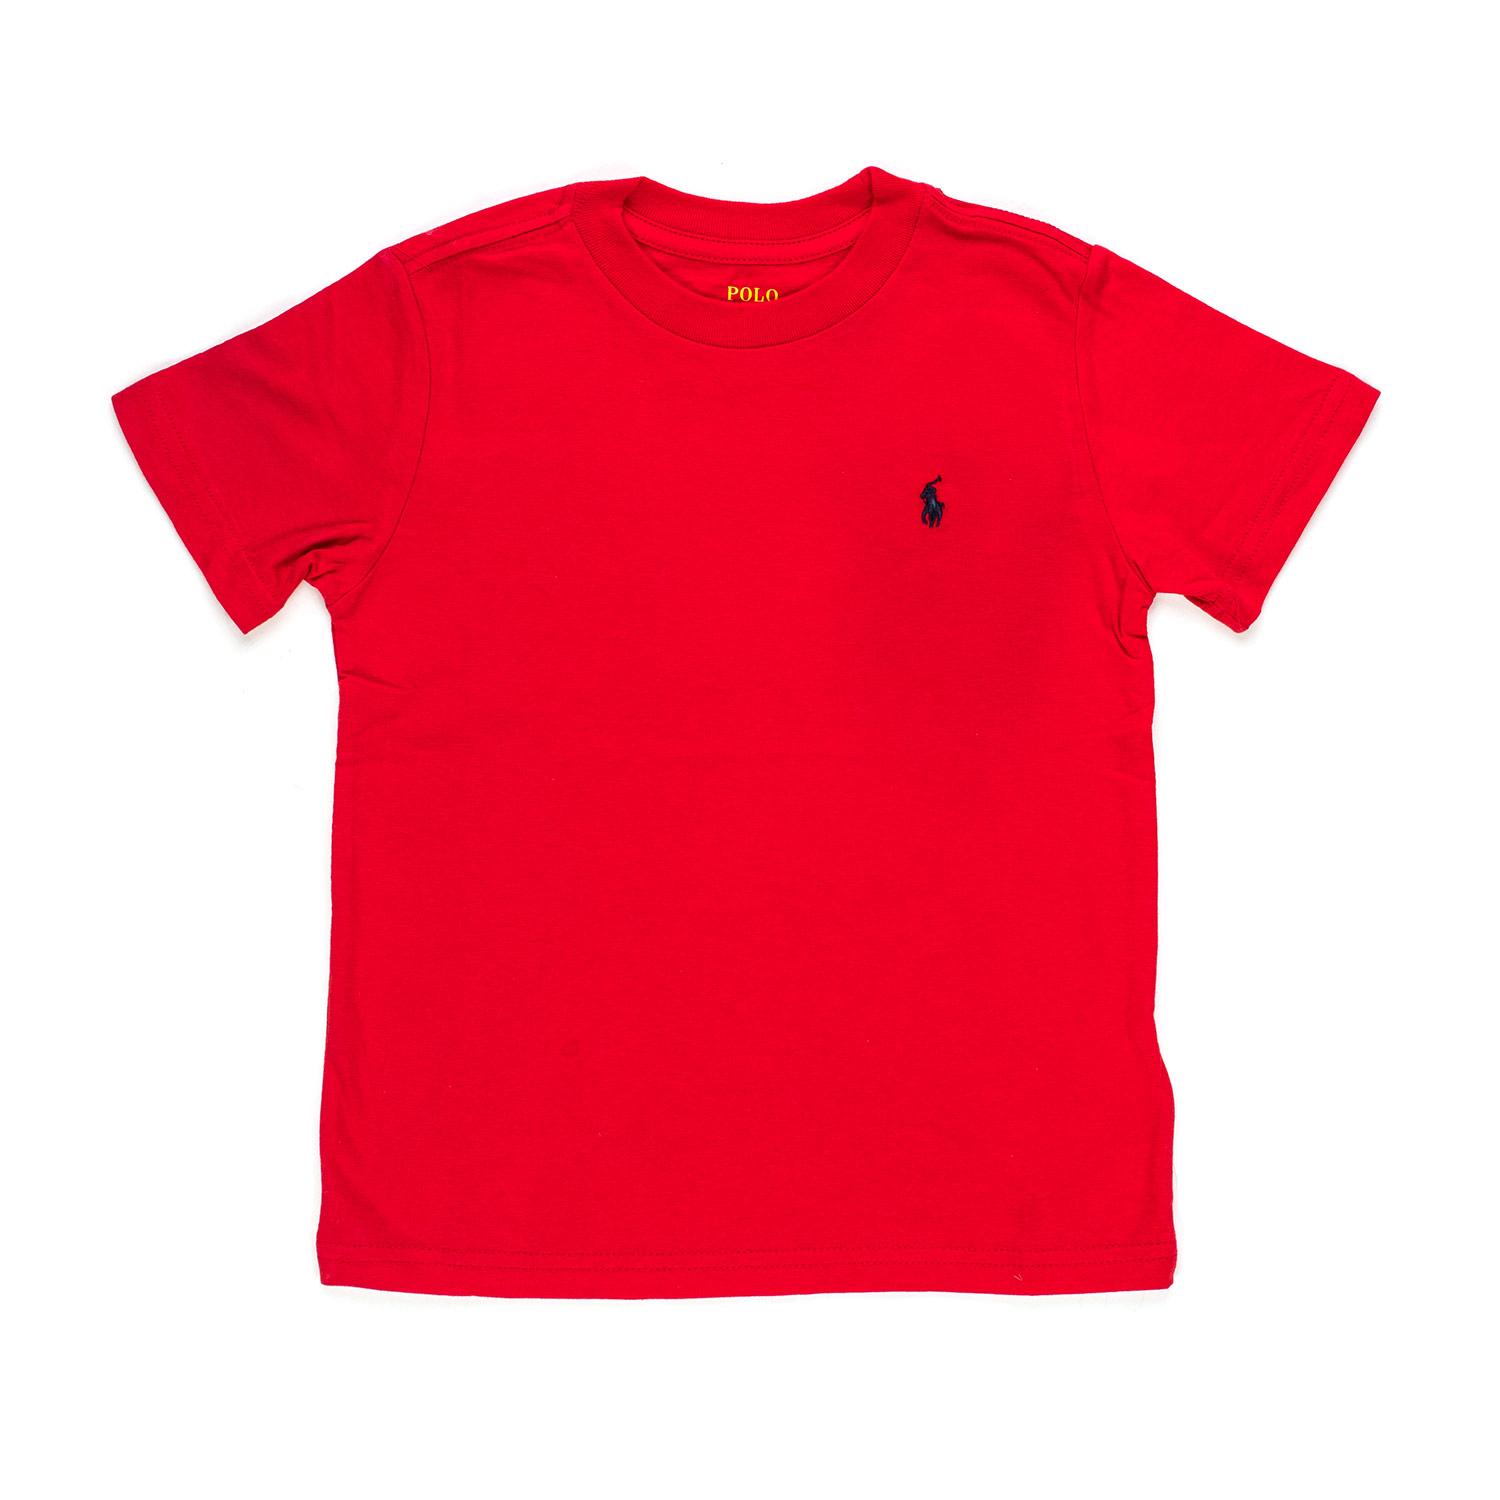 newest 92245 33b91 Short Sleeve T-Shirt Boy Red